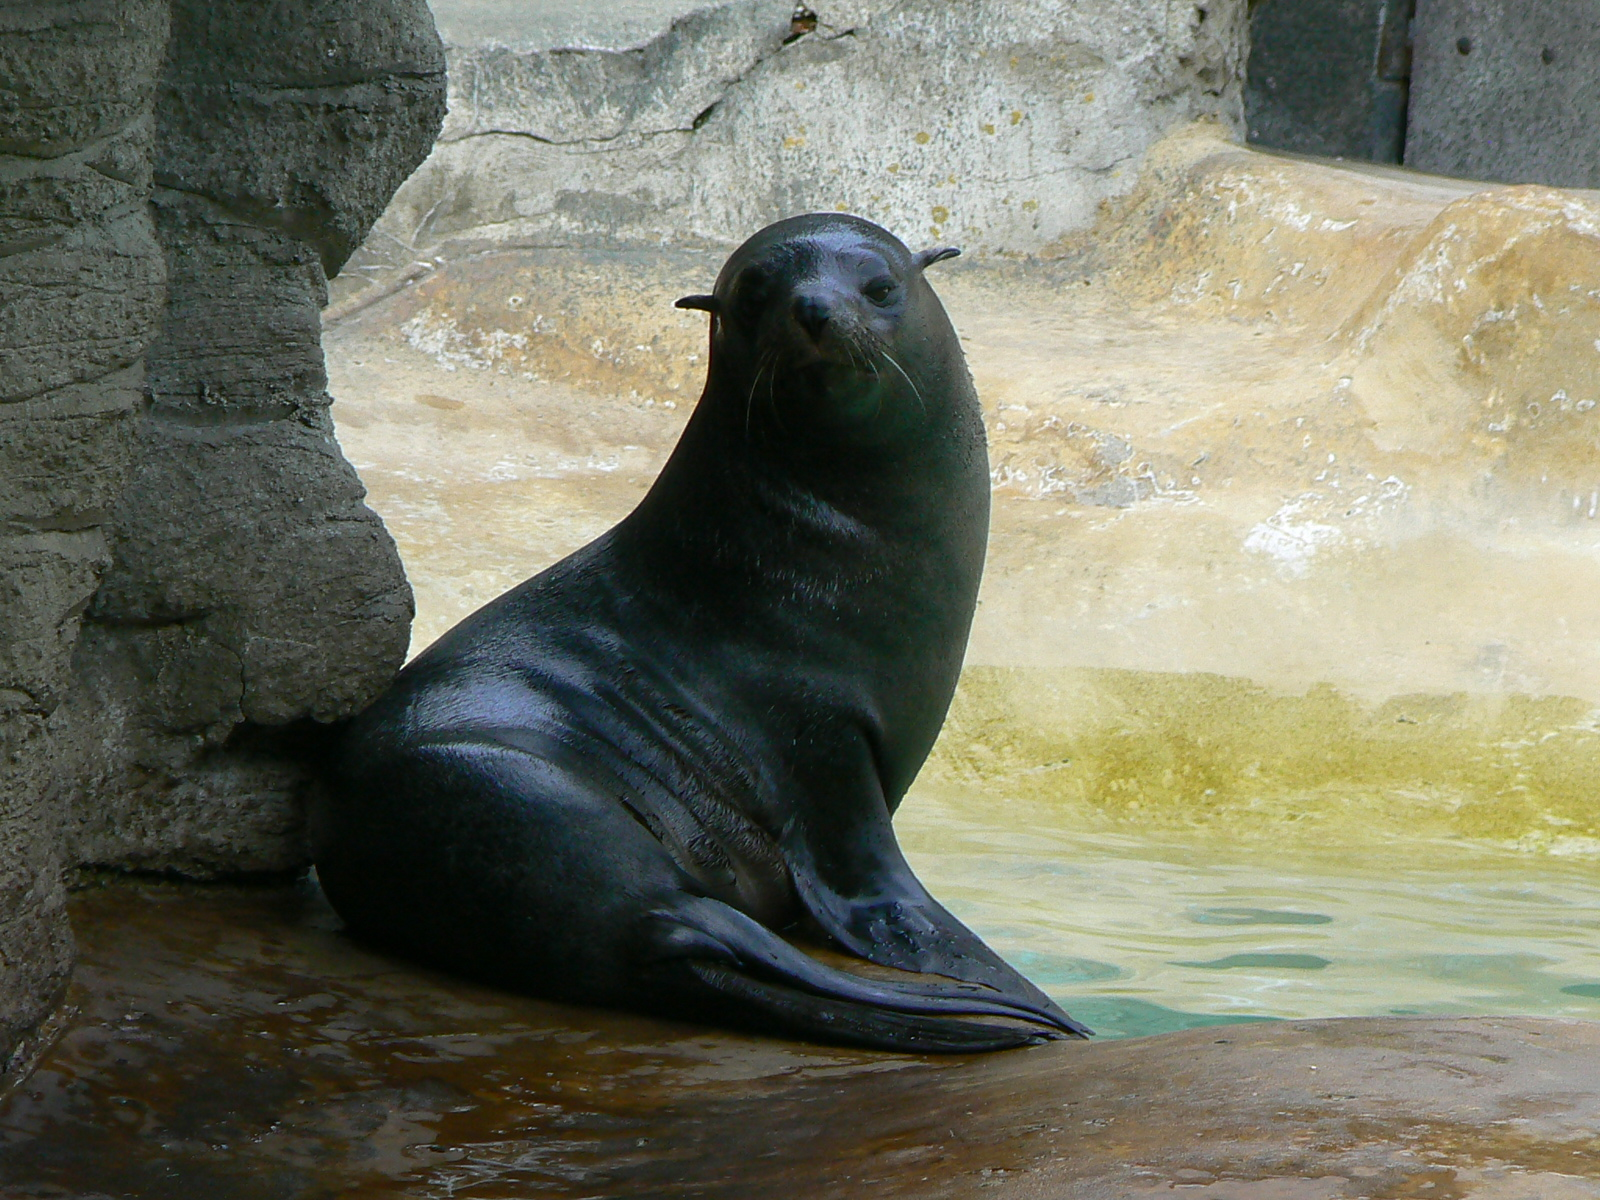 South American fur seal at the Hamburg Zoo. Photo taken on August 24, 2006.